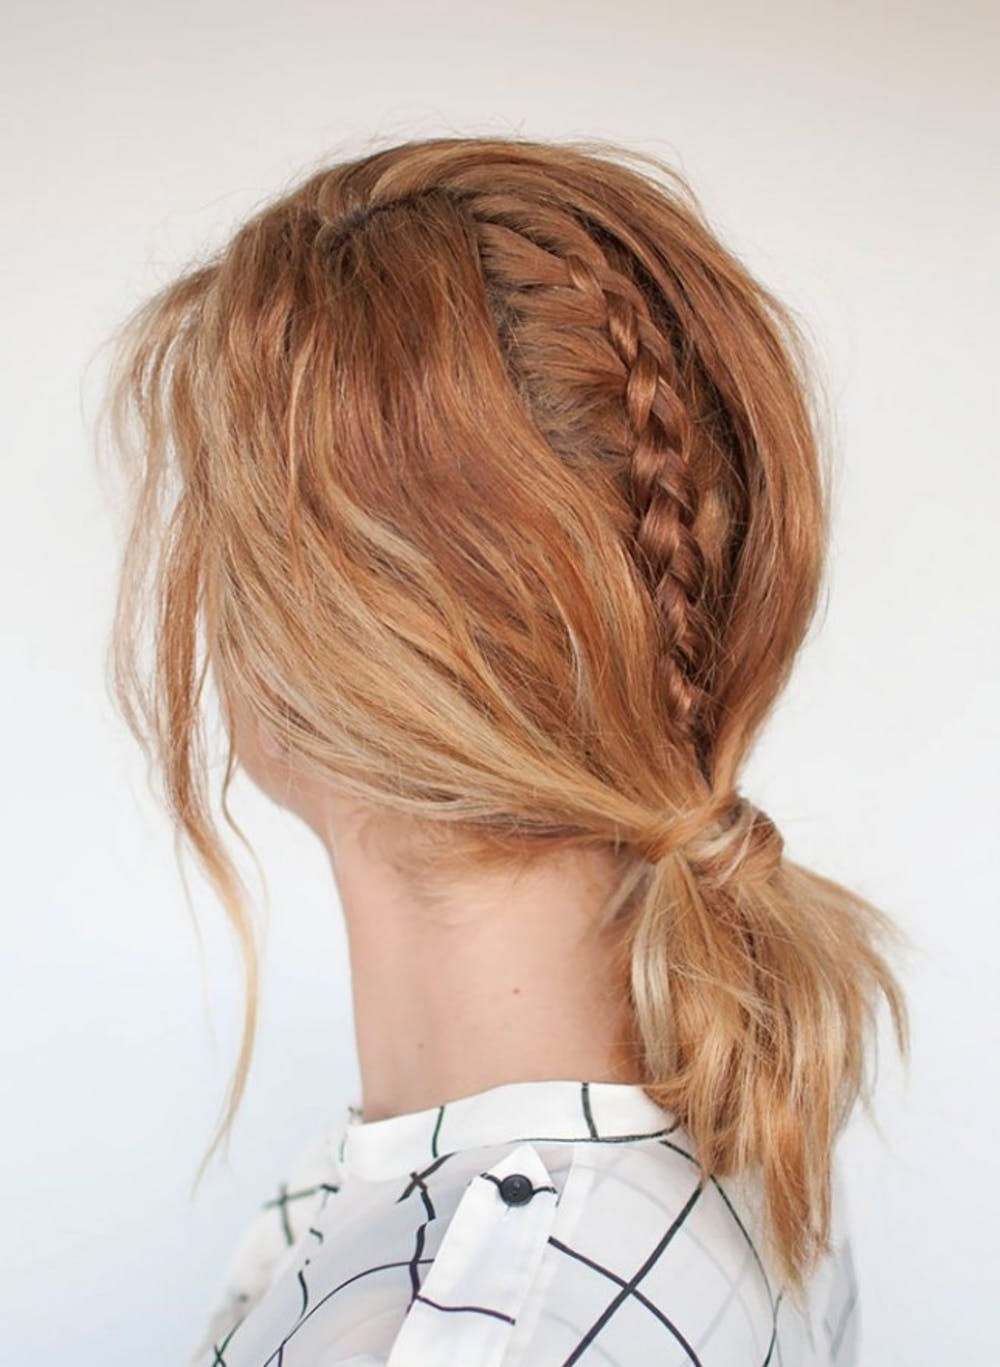 Widely Used Braided Lob Hairstyles Regarding 73 Bob And Lob Hairstyles That Will Make You Want Short Hair (View 15 of 15)